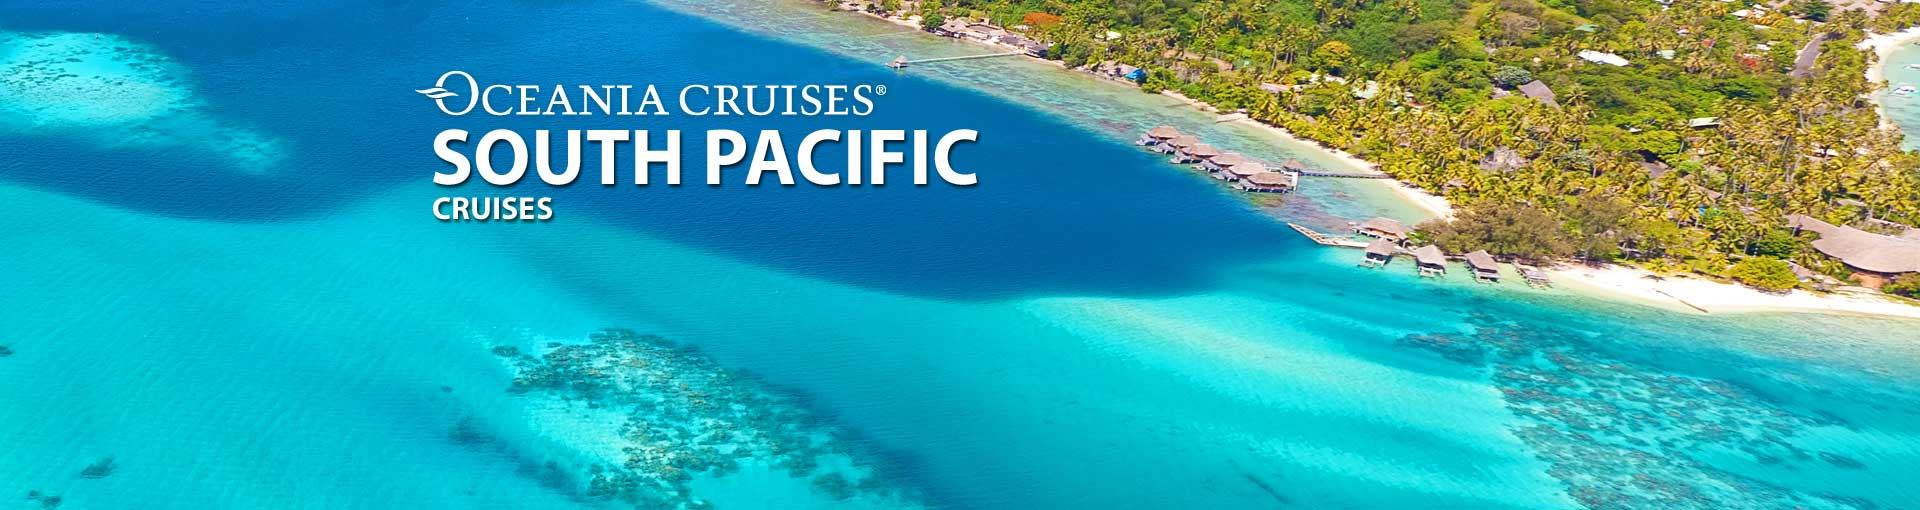 Oceania South Pacific Cruises And Tahiti Oceania - Cruise to tahiti